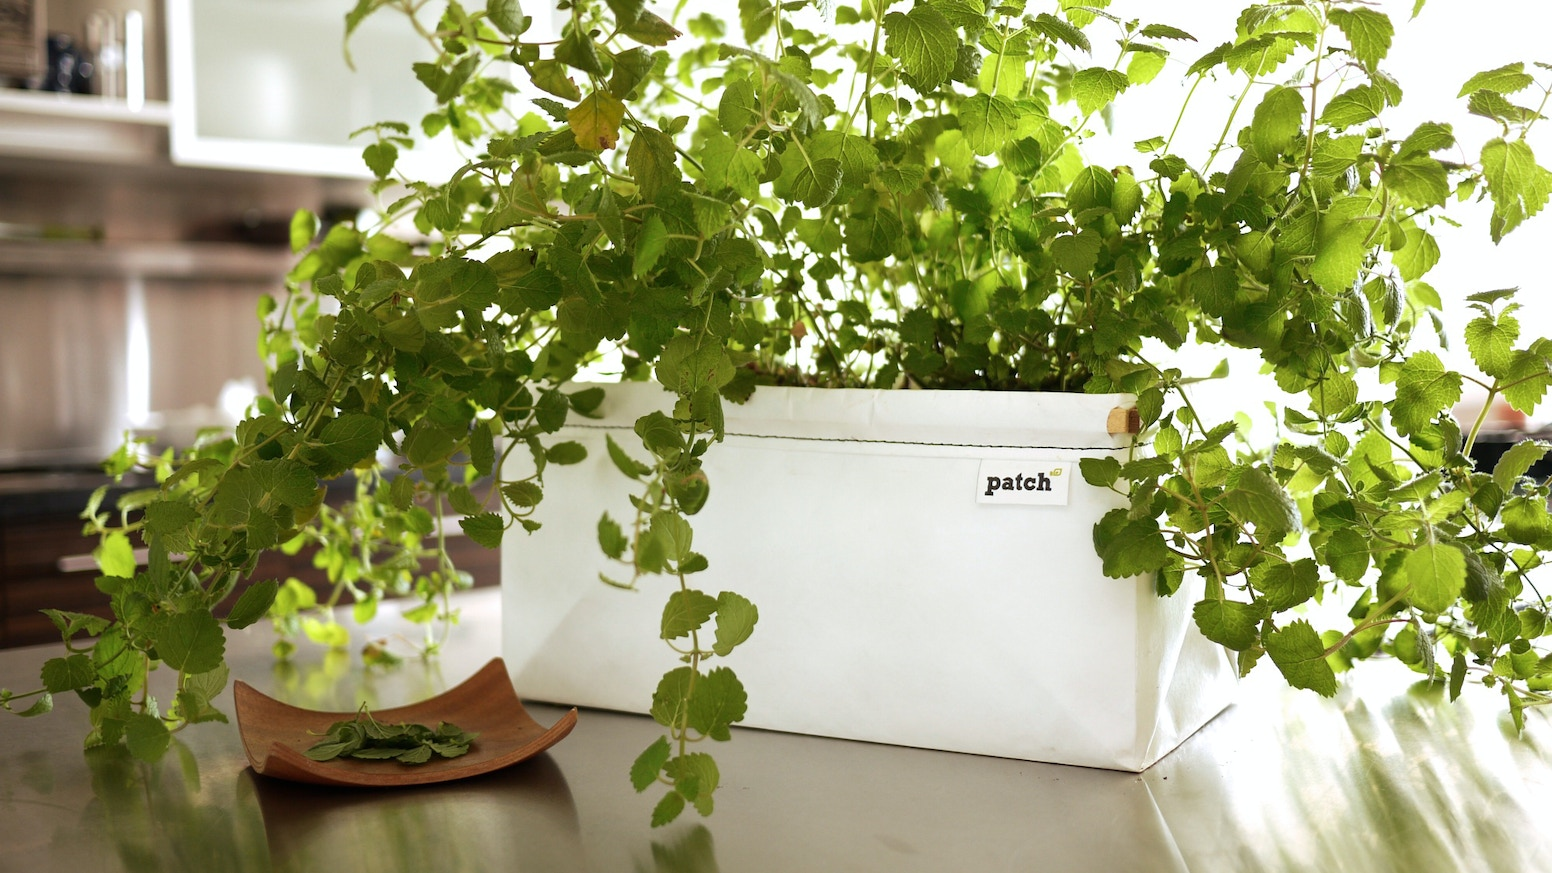 Let's Patch makes growing your own food easy. Self-watering and compact, it's designed for urban gardeners and families on the go.